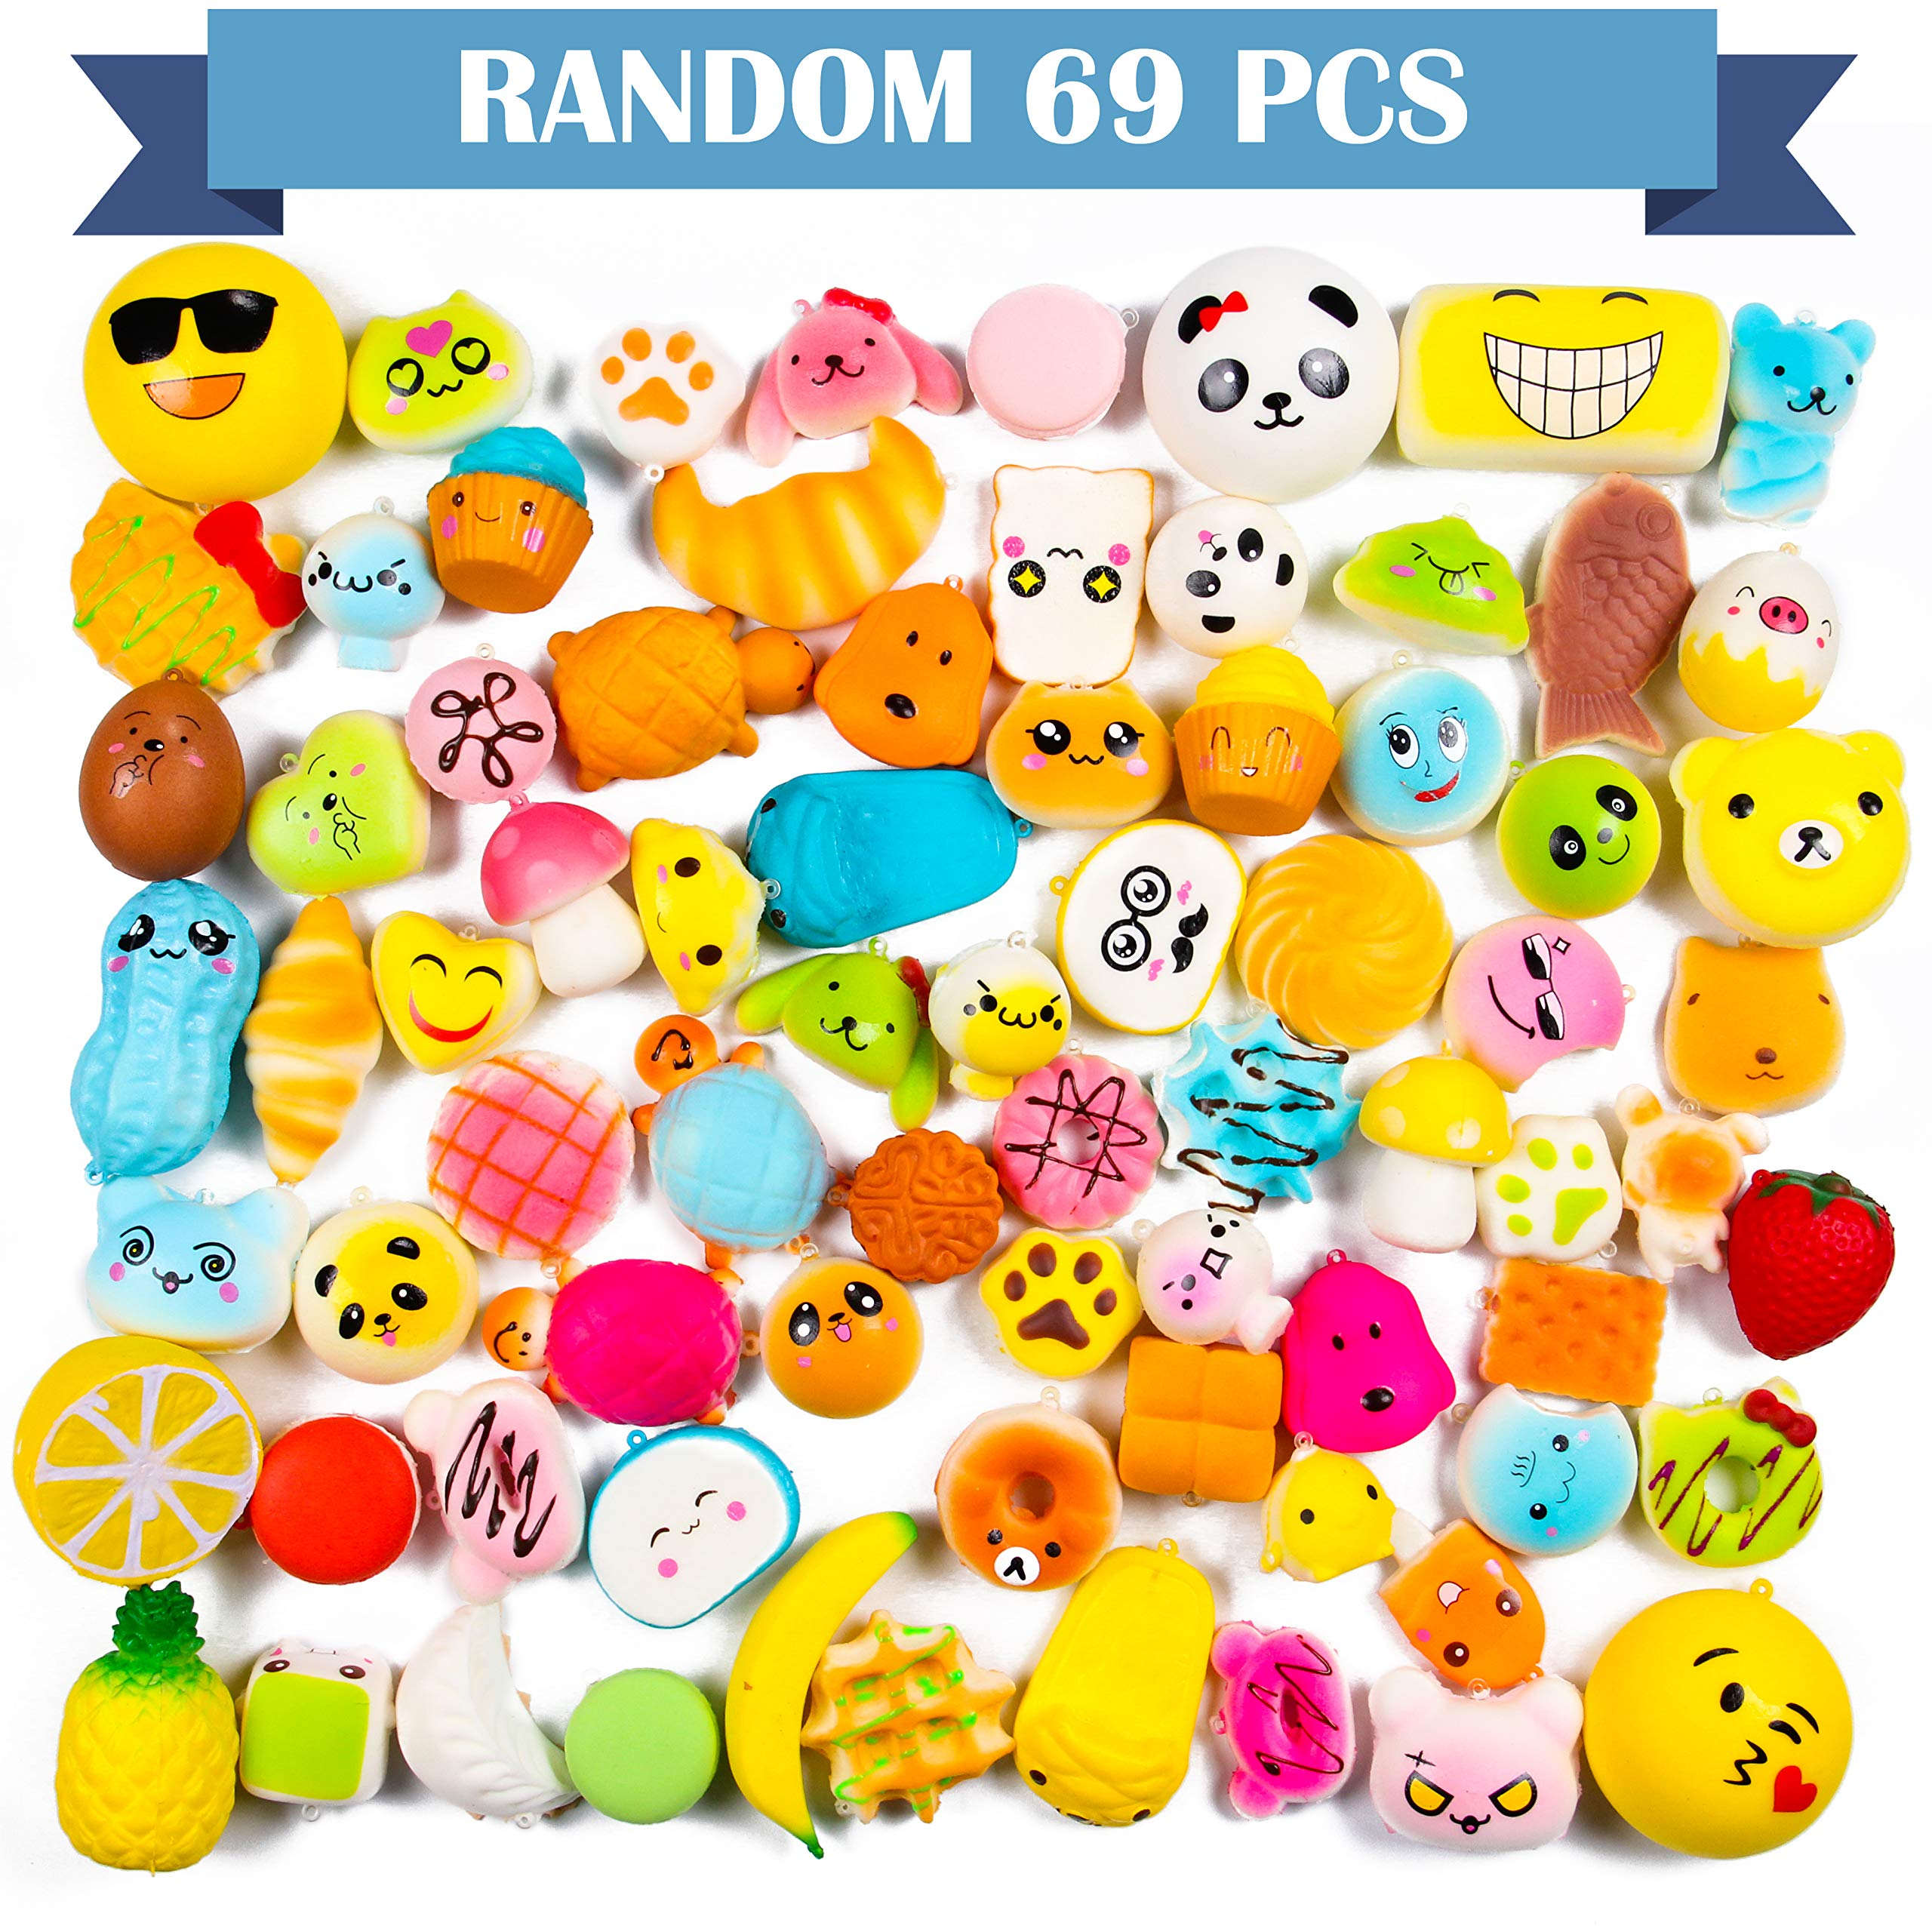 WATINC Random 70 Pcs Squishies, Birthday Gifts for Kids Party Favors, Slow Rising Simulation Bread Squishies Stress Relief Toys Goodie Bags Egg Filler, Keychain Phone Straps, 1 Jumbo Squishies include by WATINC (Image #4)